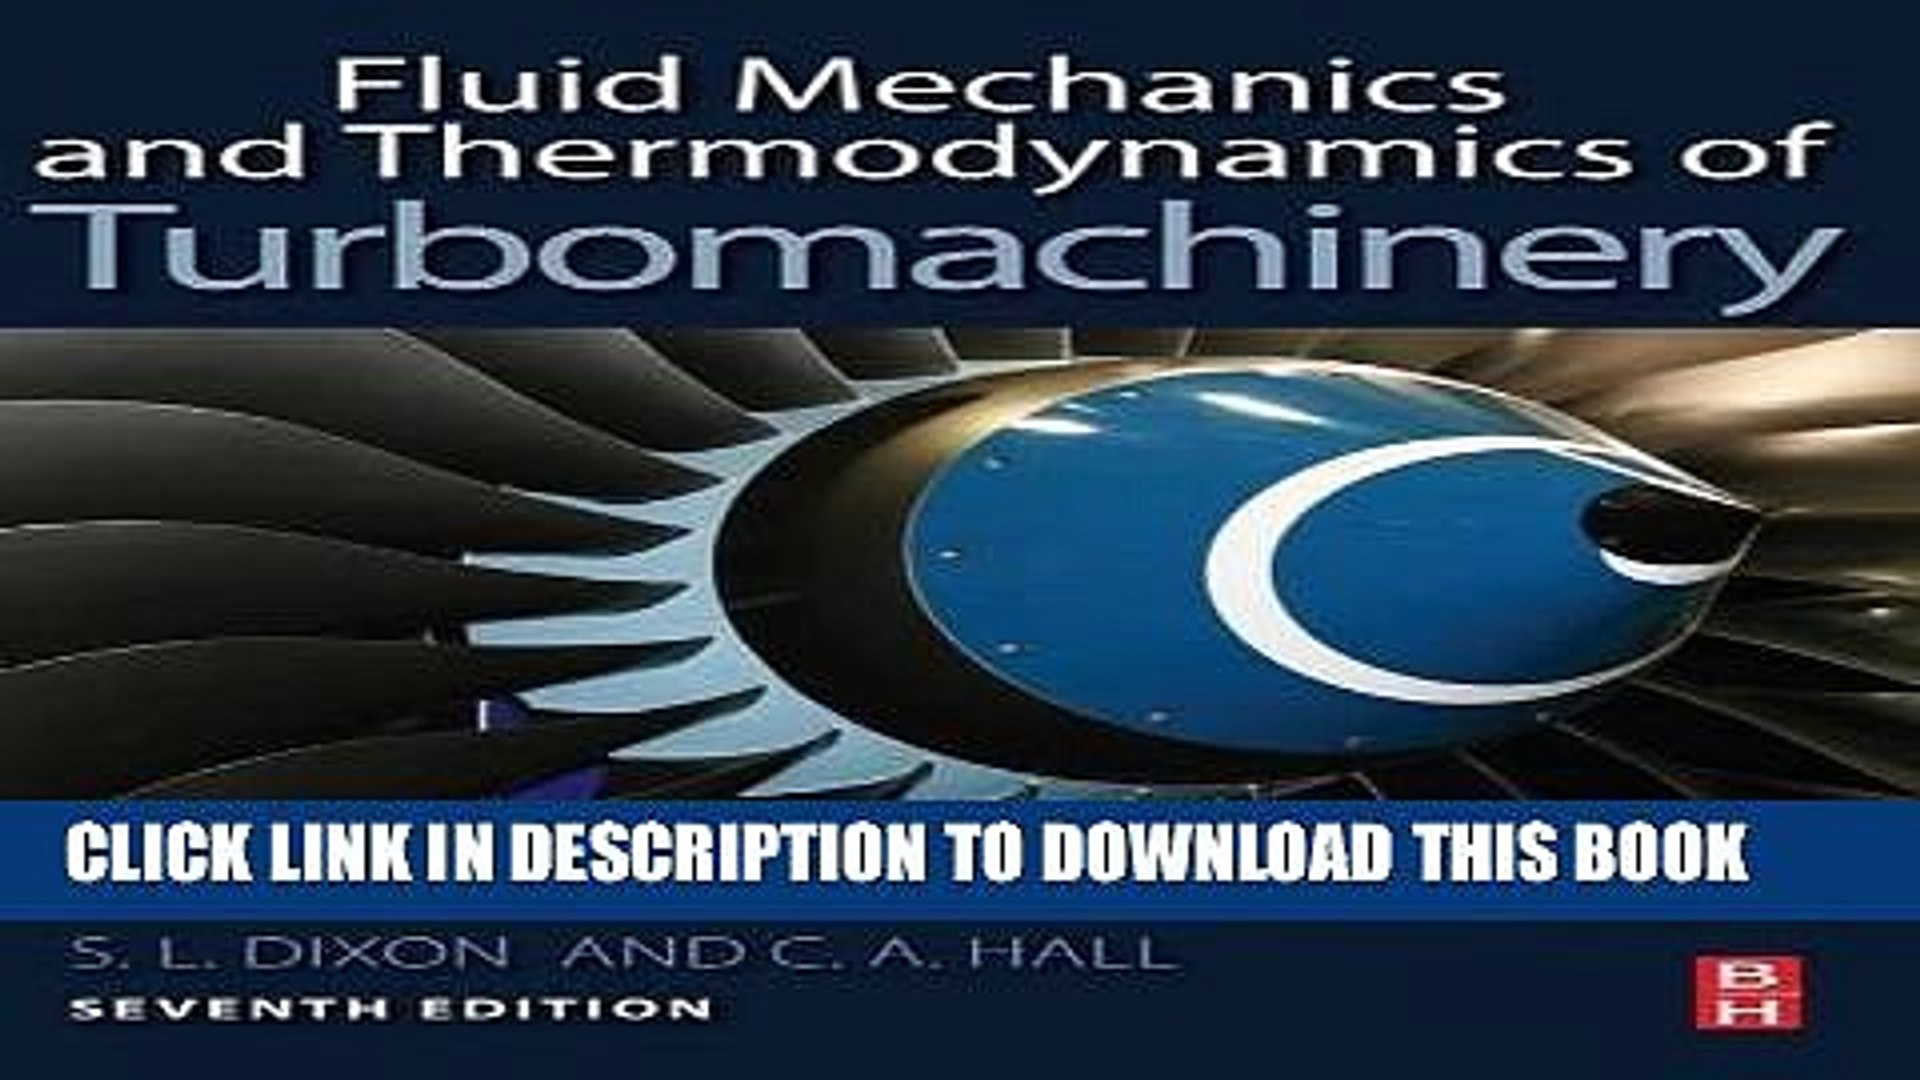 [READ] Online Fluid Mechanics and Thermodynamics of Turbomachinery, Seventh  Edition Free Download